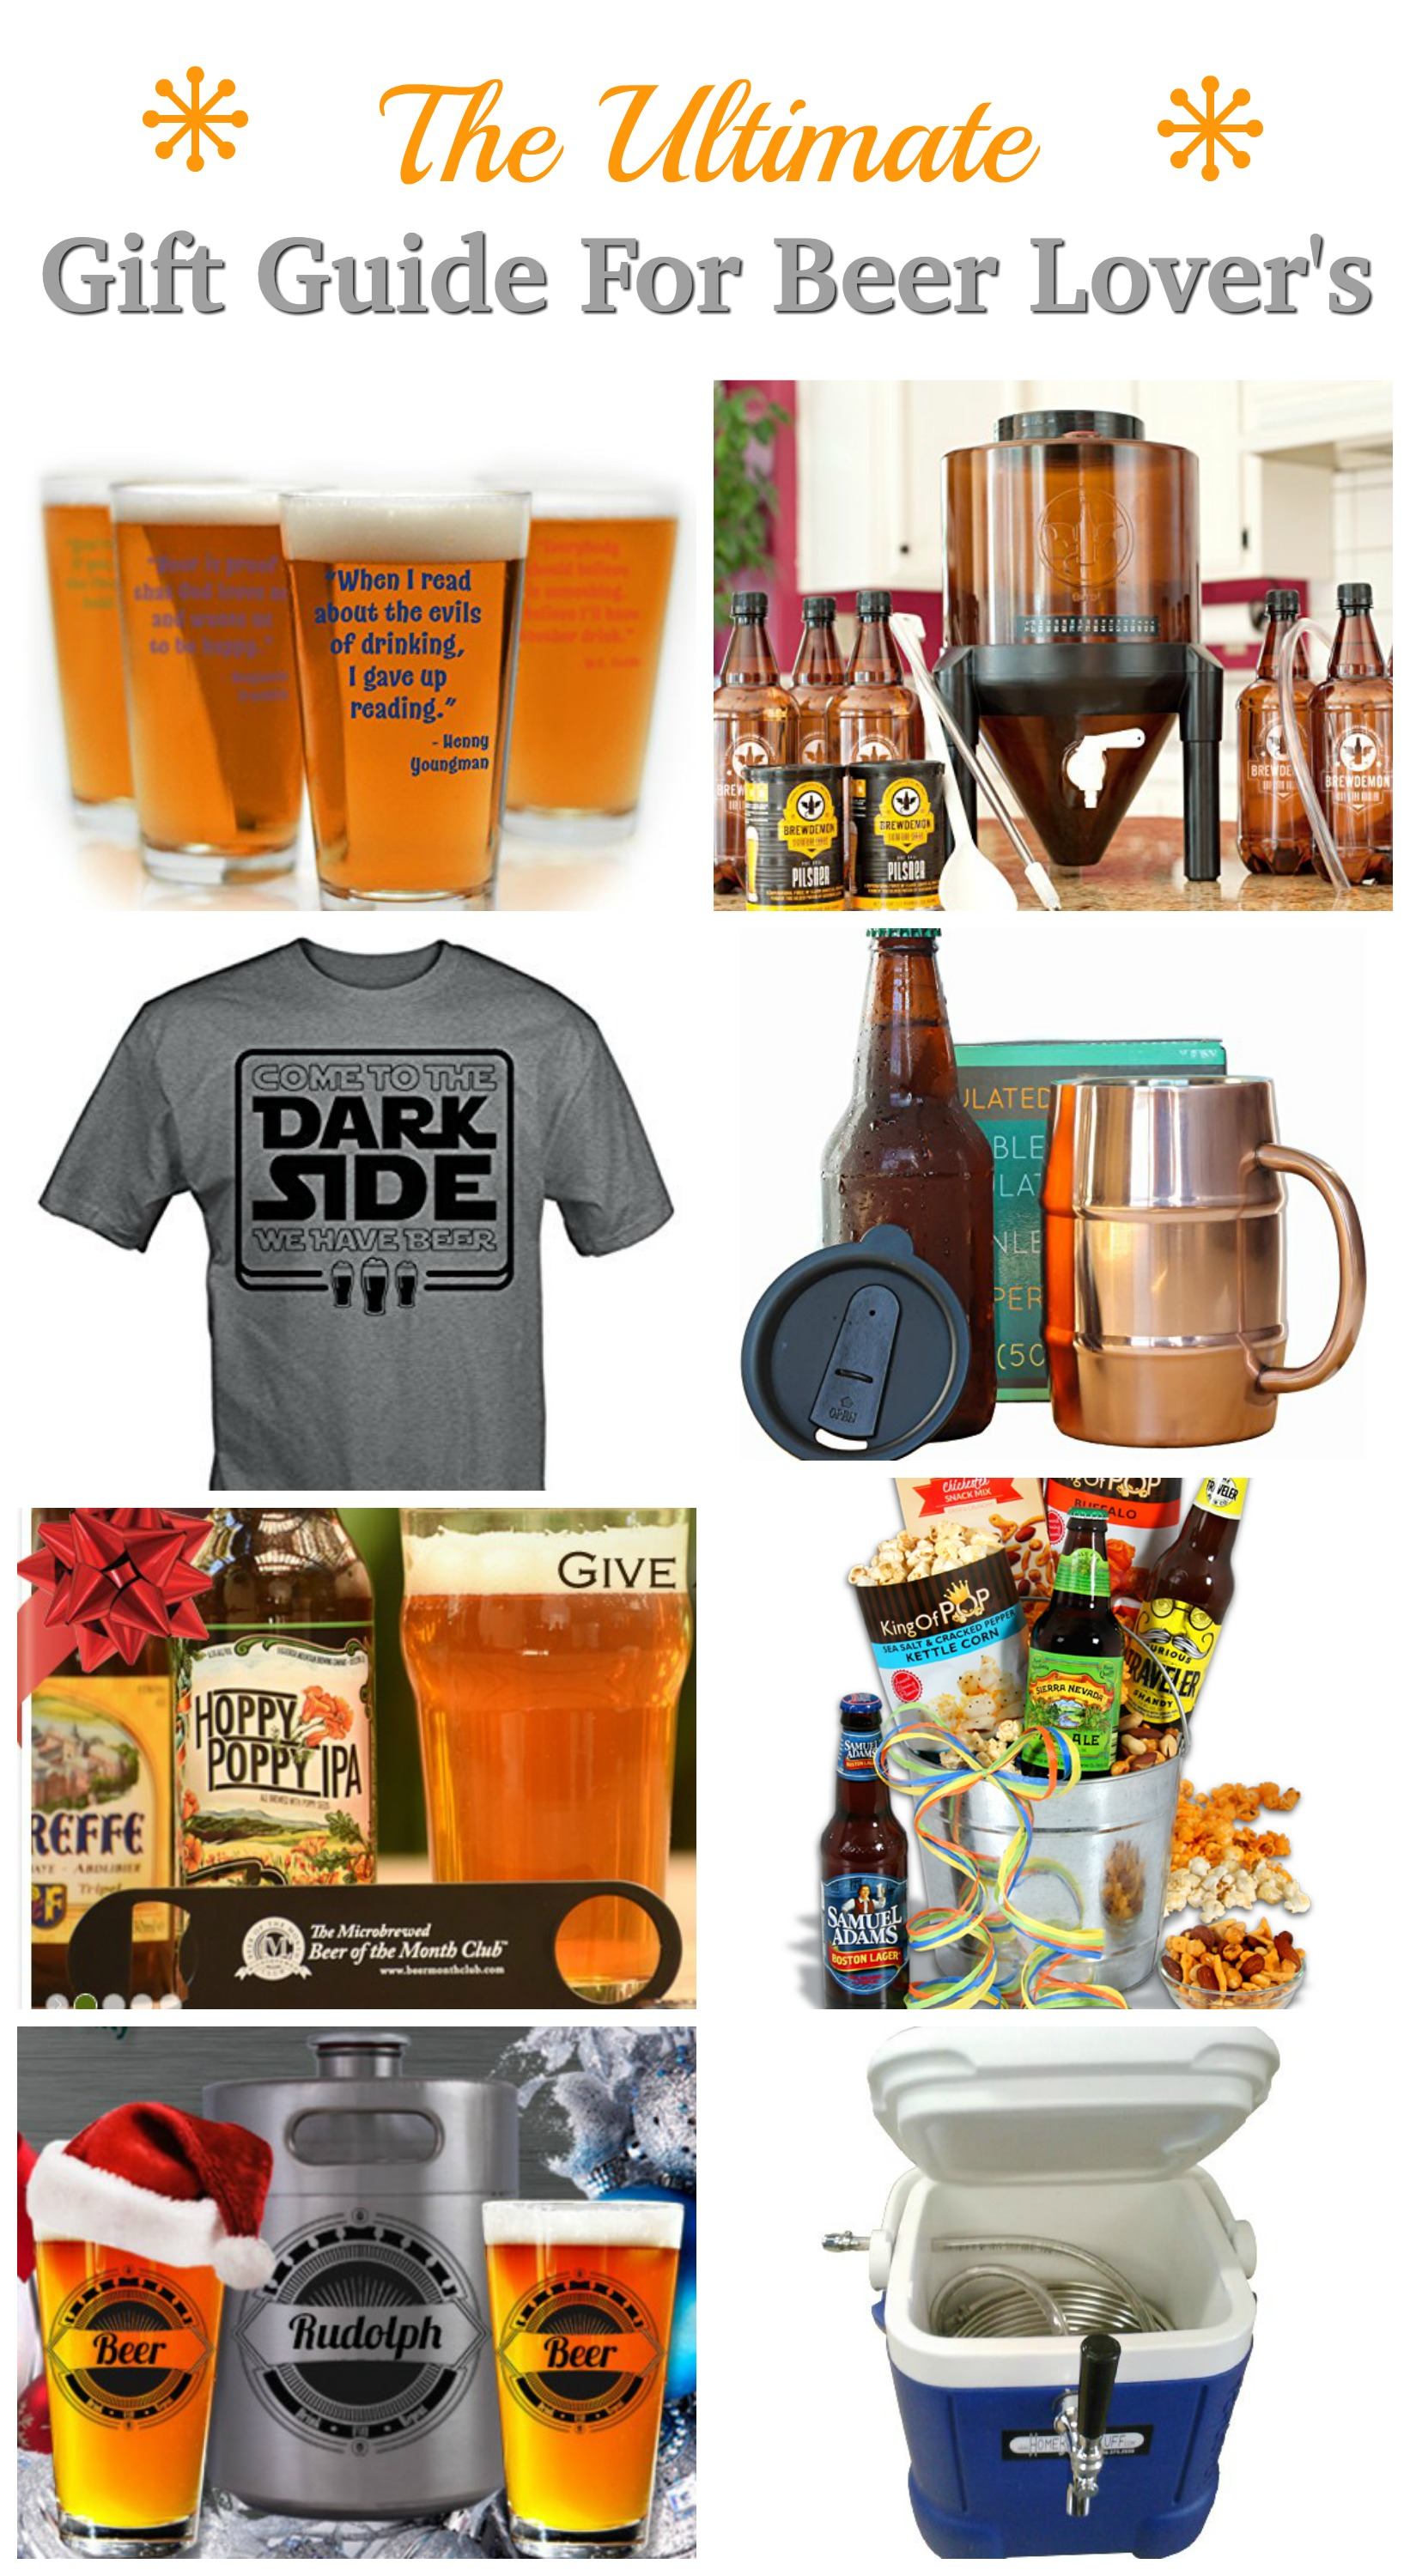 Skip the boring gift! We've got great gift ideas for your Beer Lover! Ultimate Gift Guide for Beer Lover's